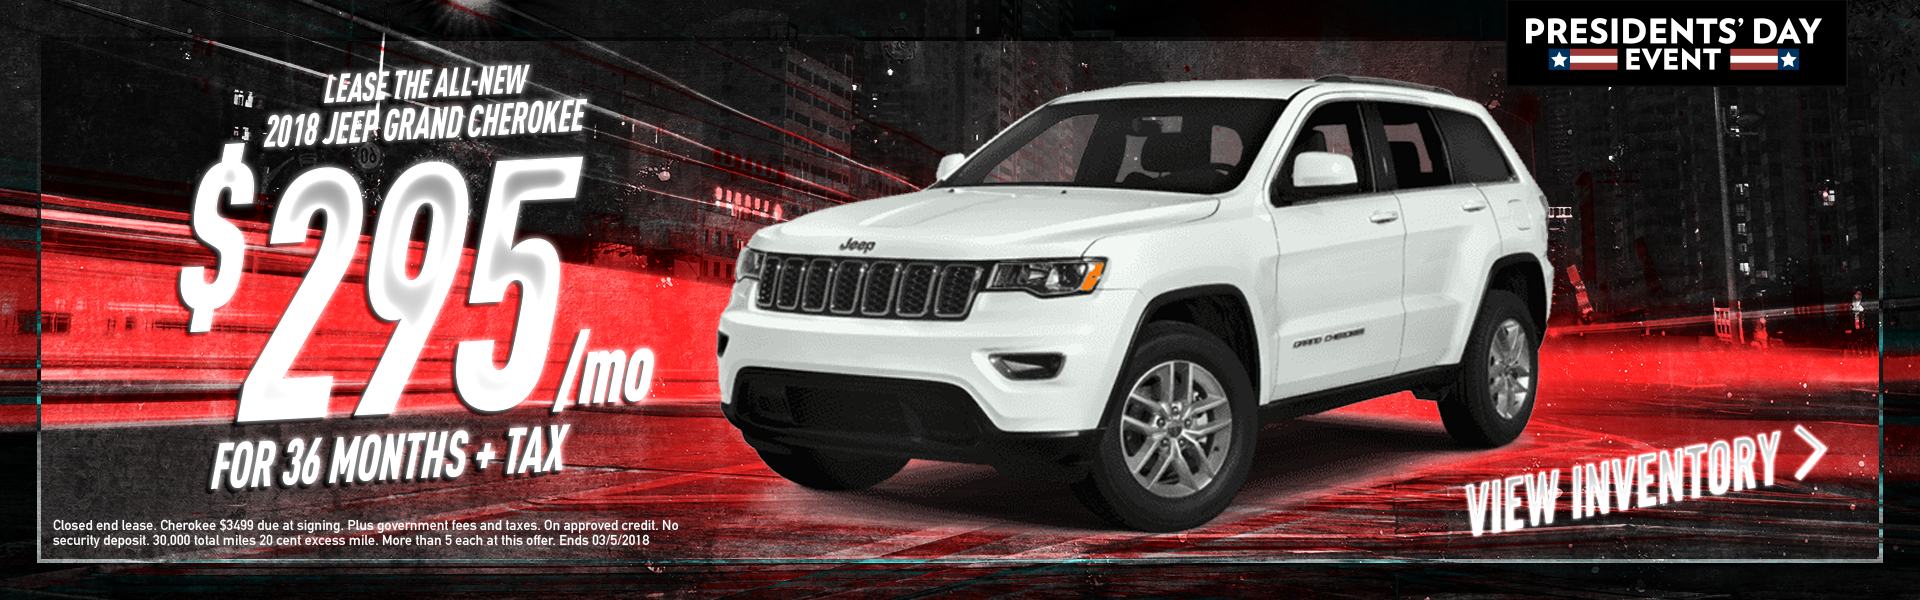 2018-jeep-grand-cherokee-rancho